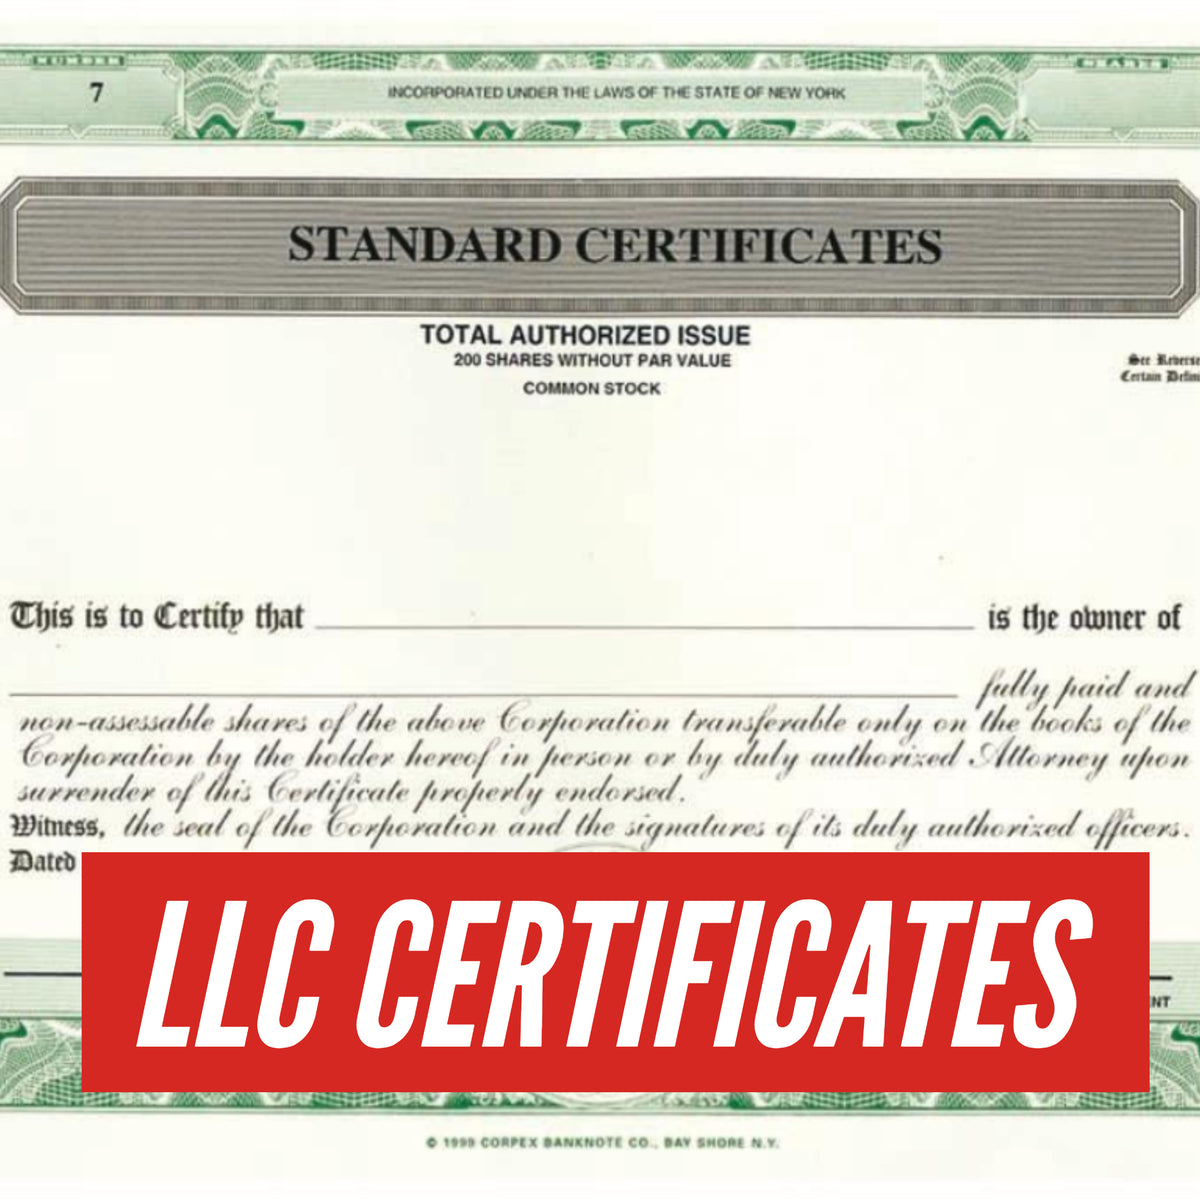 2018 Corpex Stock Certificates For Your Company